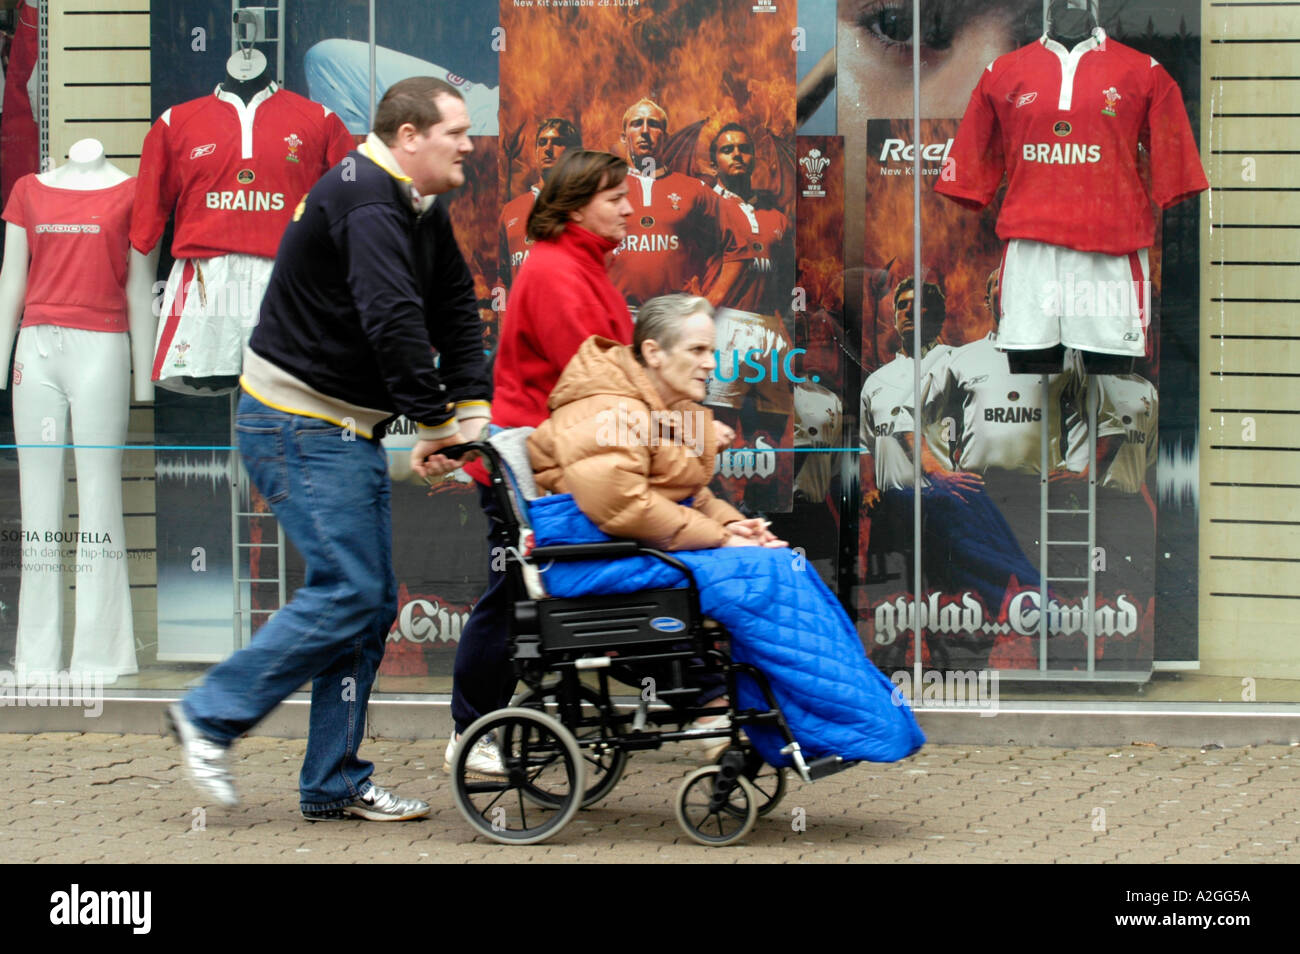 Elderly lady in wheelchair being pushed past sports shop window display in Cardiff city centre Wales UK - Stock Image